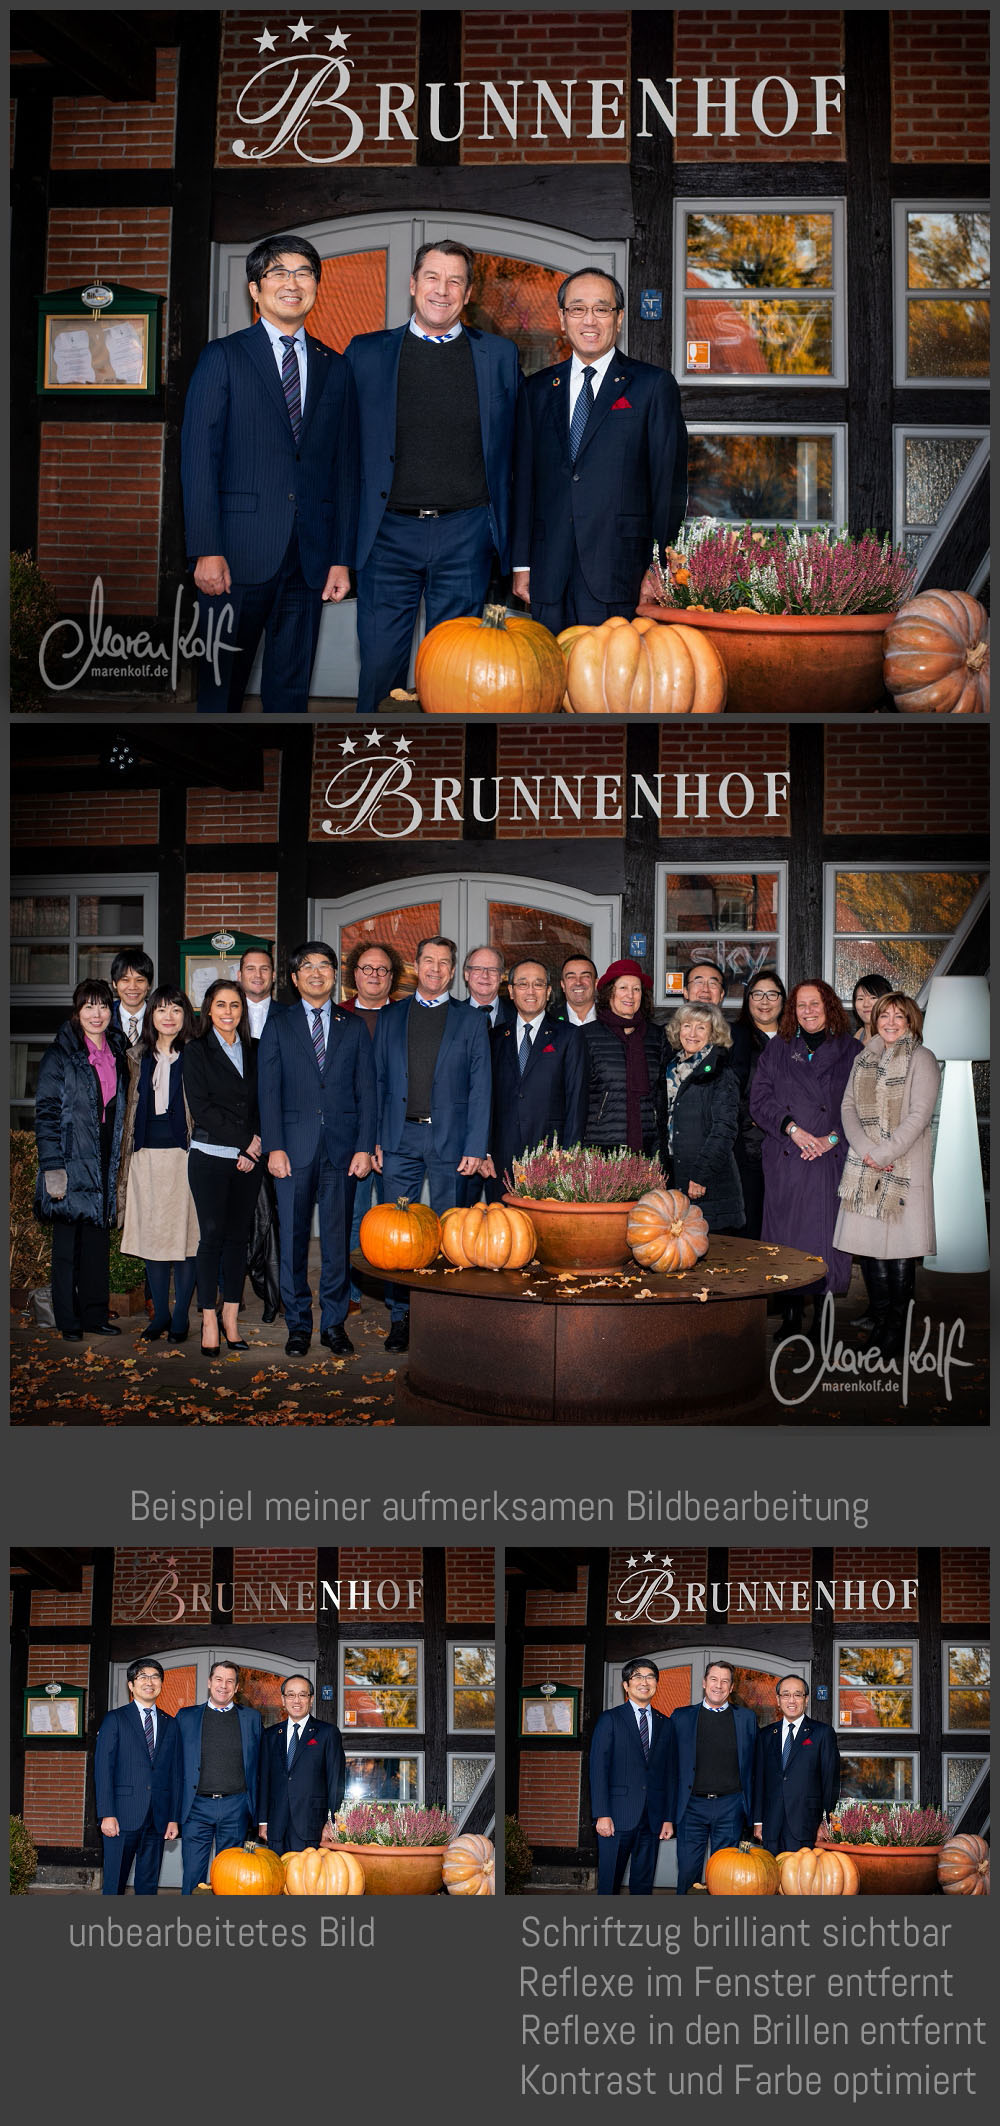 businessfotografie-hannover-hotel-brunnenhof-international-wedemark-maren-kolf-fotografie-3